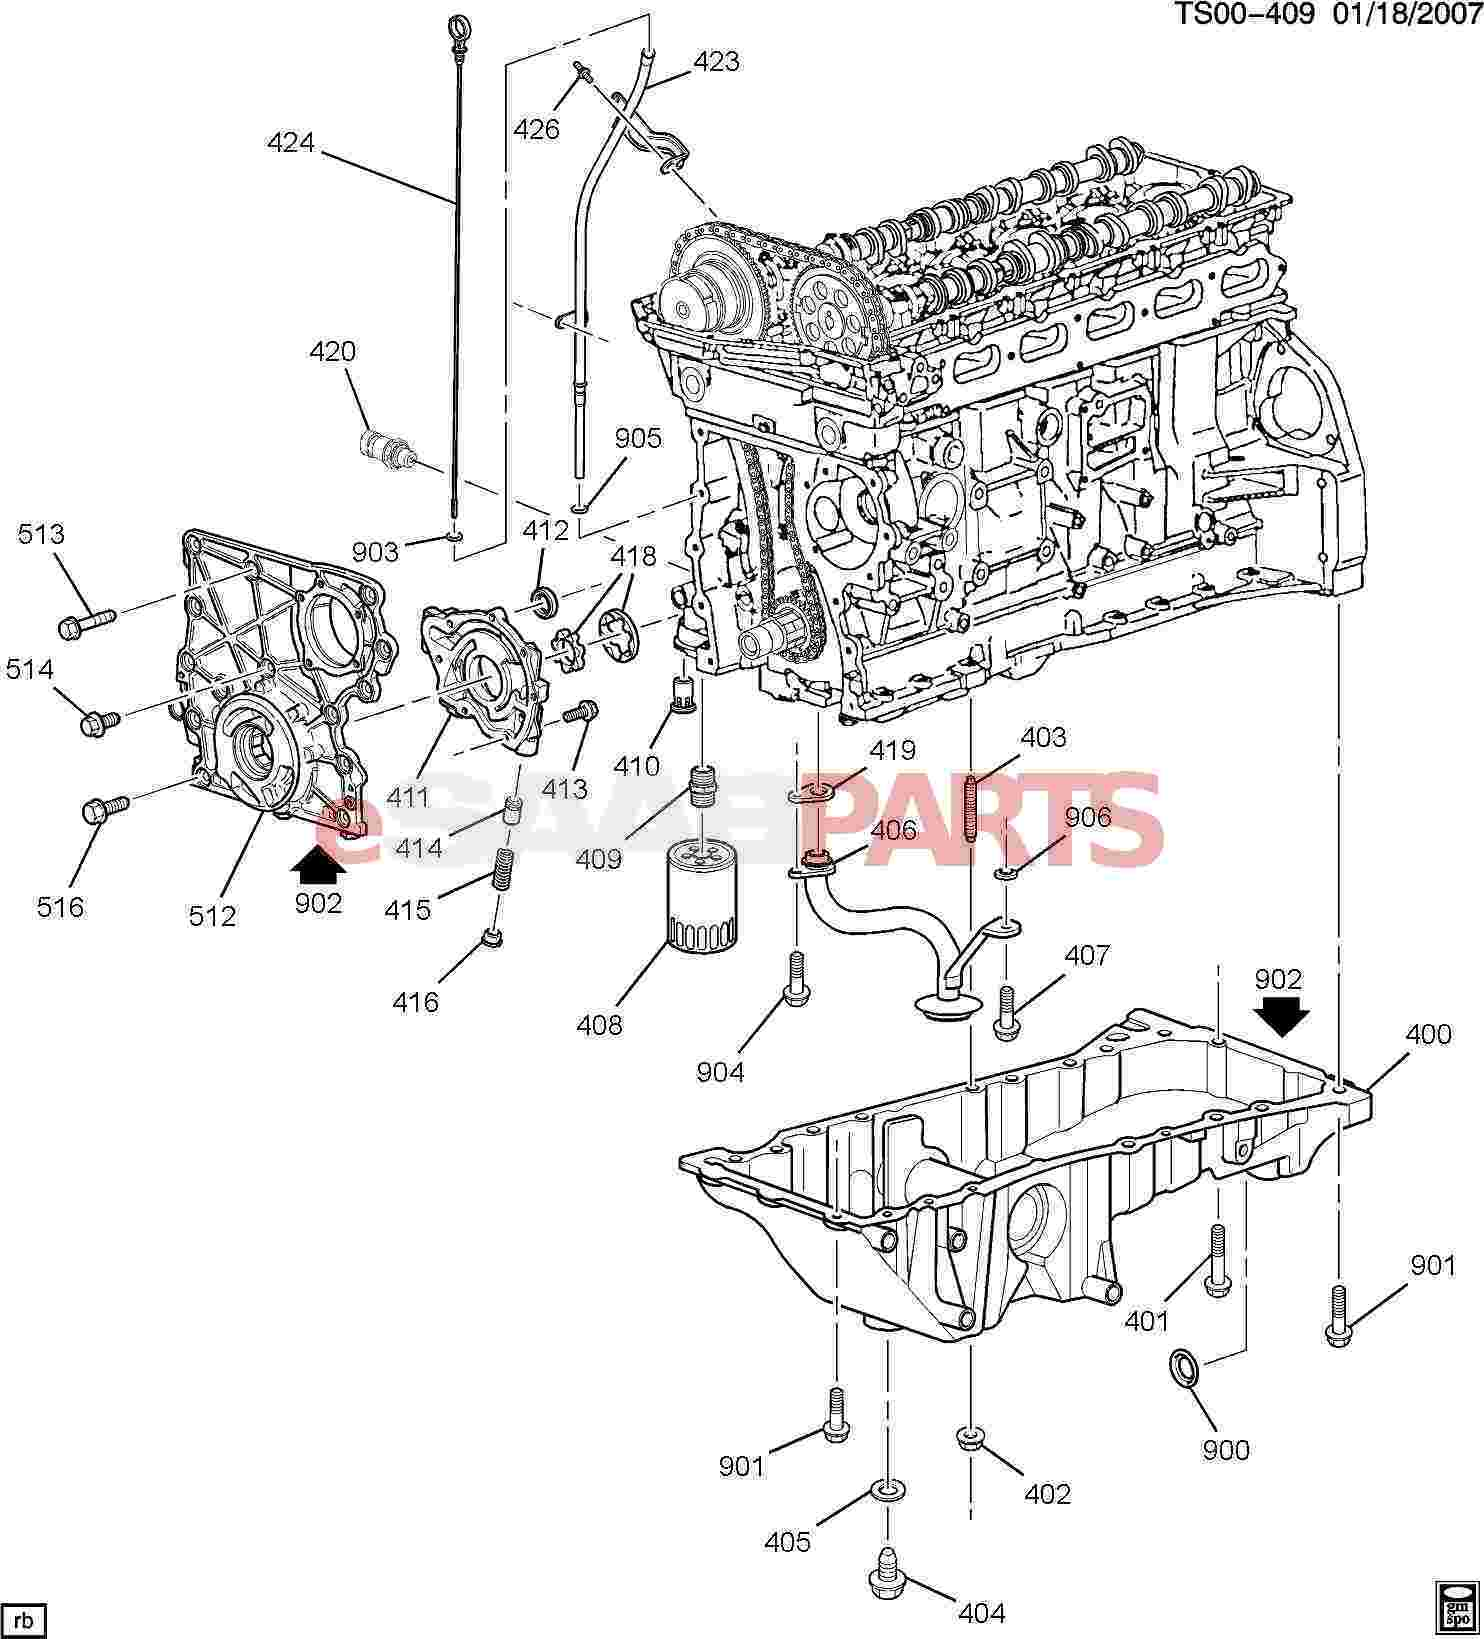 2008 gmc envoy engine diagram wiring diagram \u0026 cable 2008 Envoy Engine Diagram Oil System engine on 2004 gmc envoy